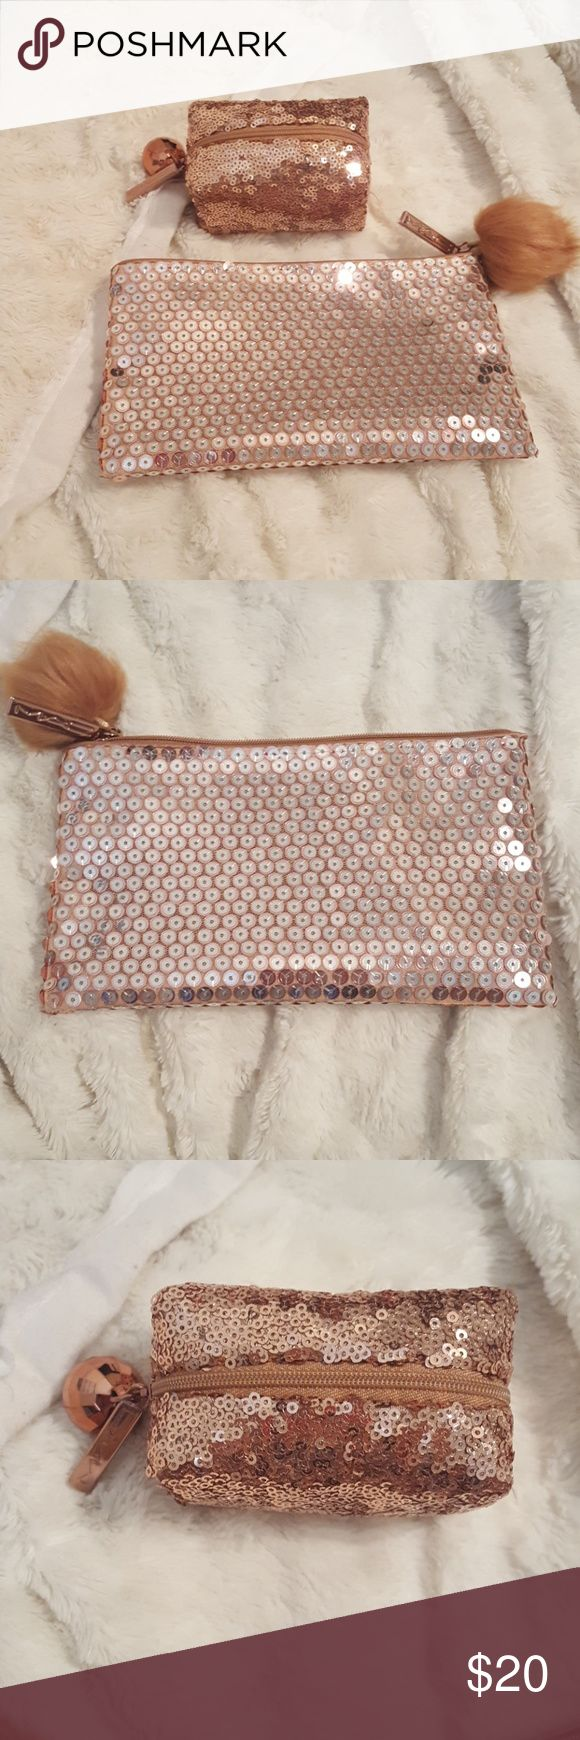 NWOT MAC make up bags. Two MAC makeup bags from their holiday collection.  Both are rose gold and super sparkly! They are brand new. These are just the bags, no product. MAC Cosmetics Makeup Brushes & Tools